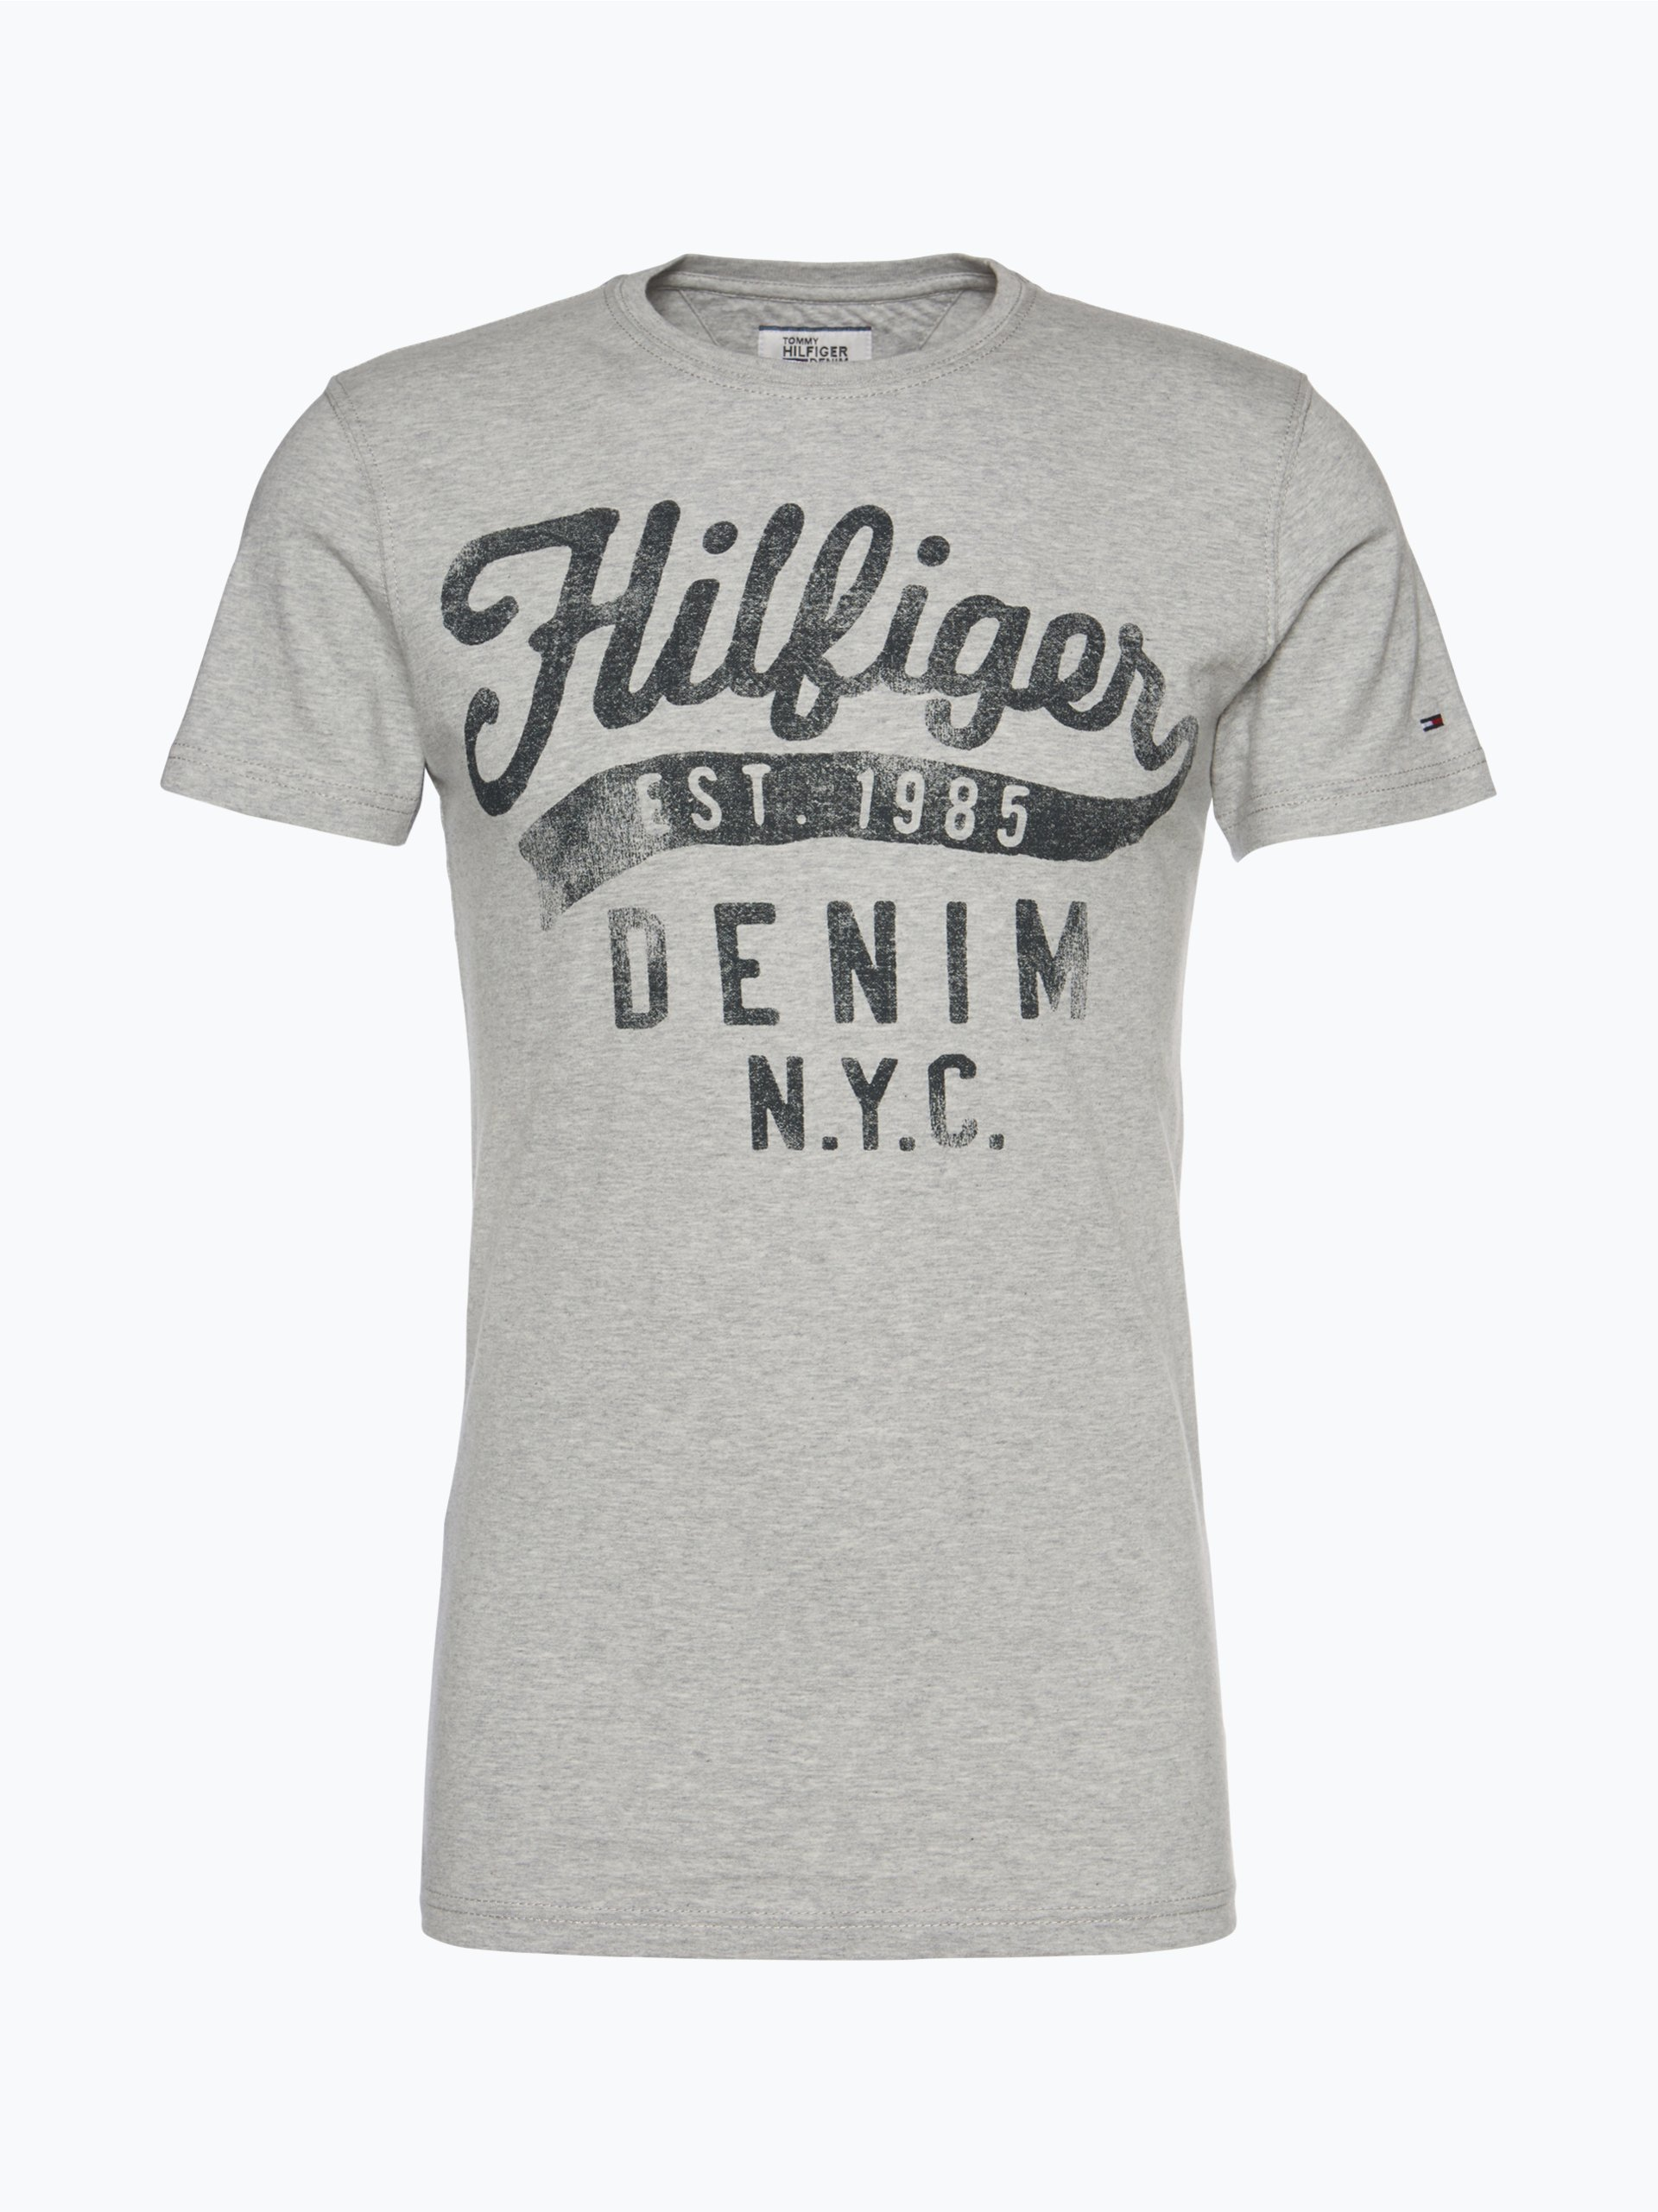 hilfiger denim herren t shirt grau gemustert online kaufen. Black Bedroom Furniture Sets. Home Design Ideas